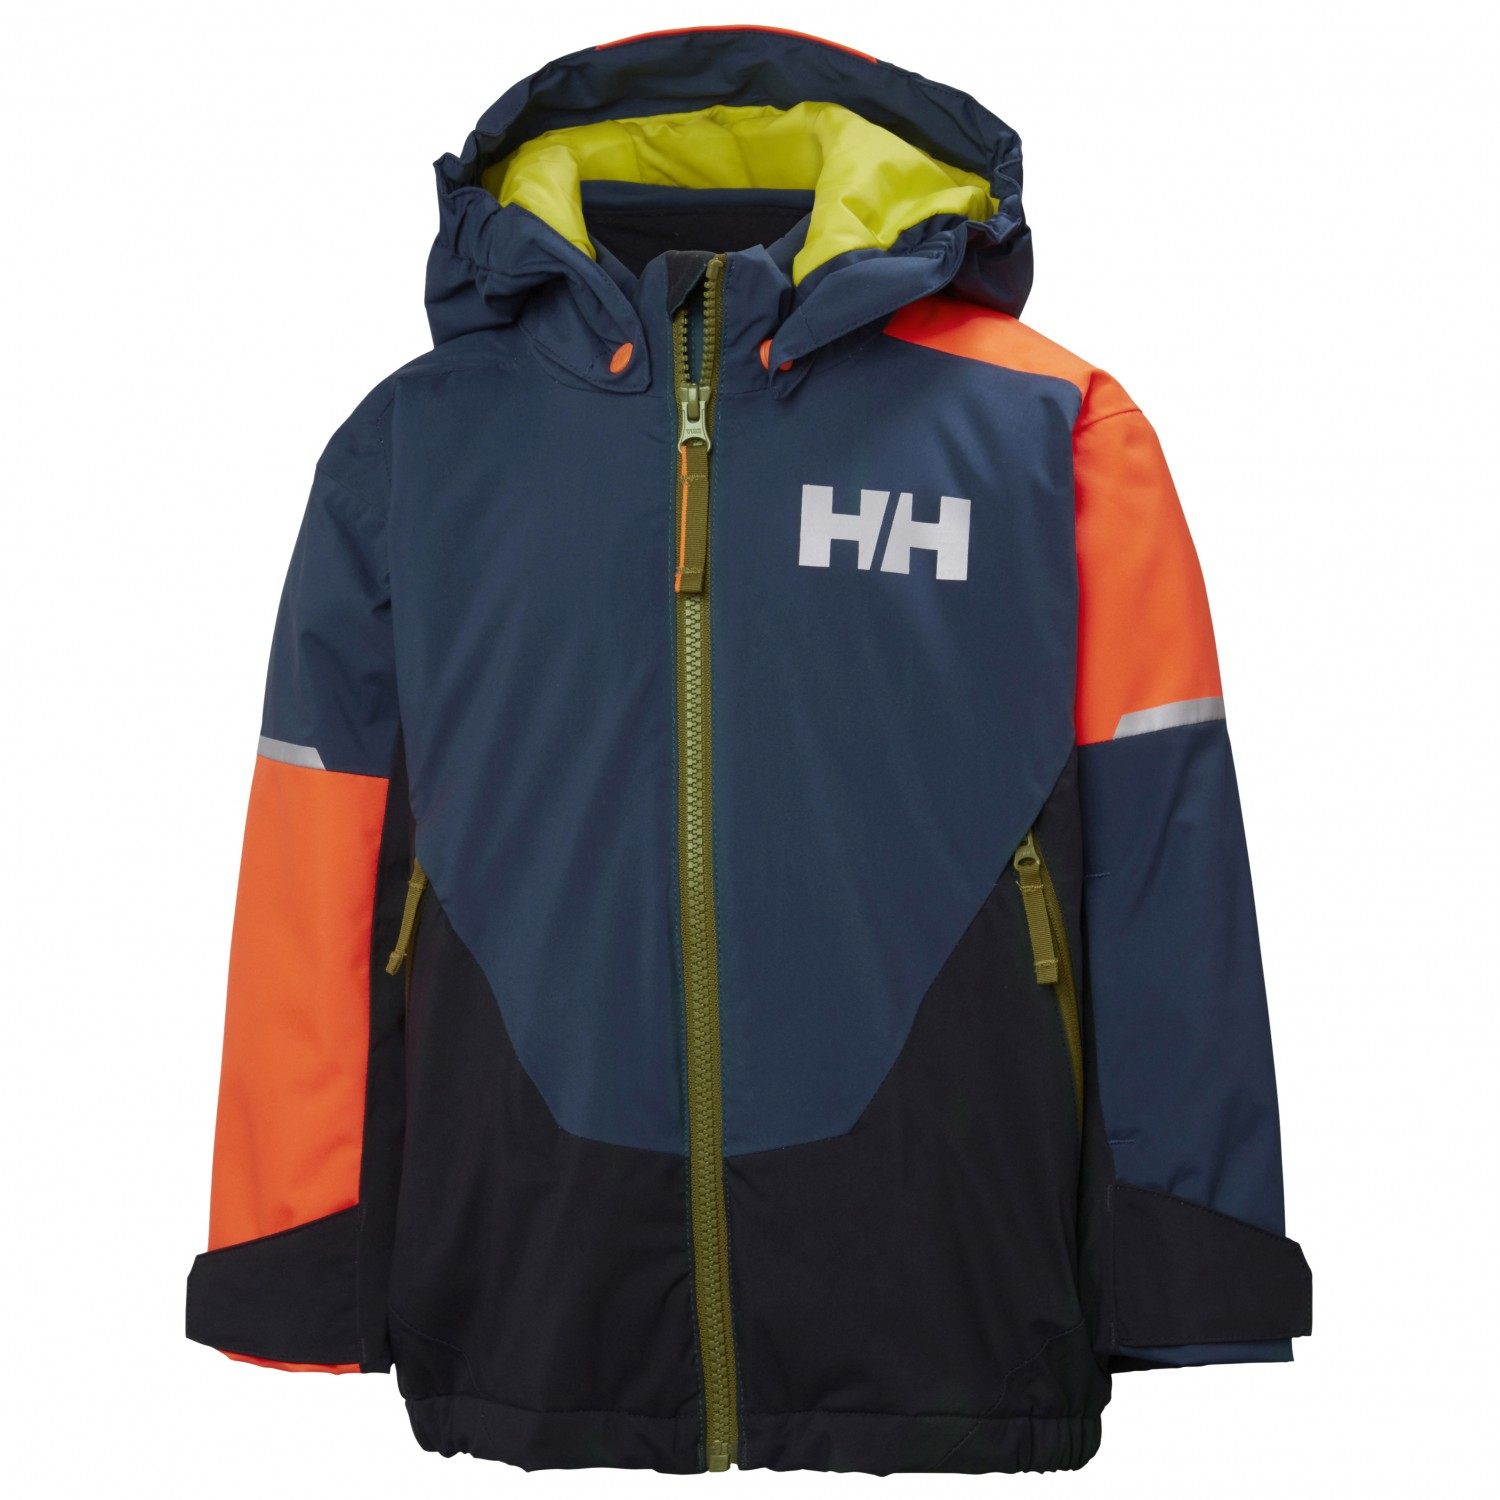 Helly hansen rider insulated jacket ski jacket kids free jpg 1500x1500 Helly  hansen ski vests ba14be4d3